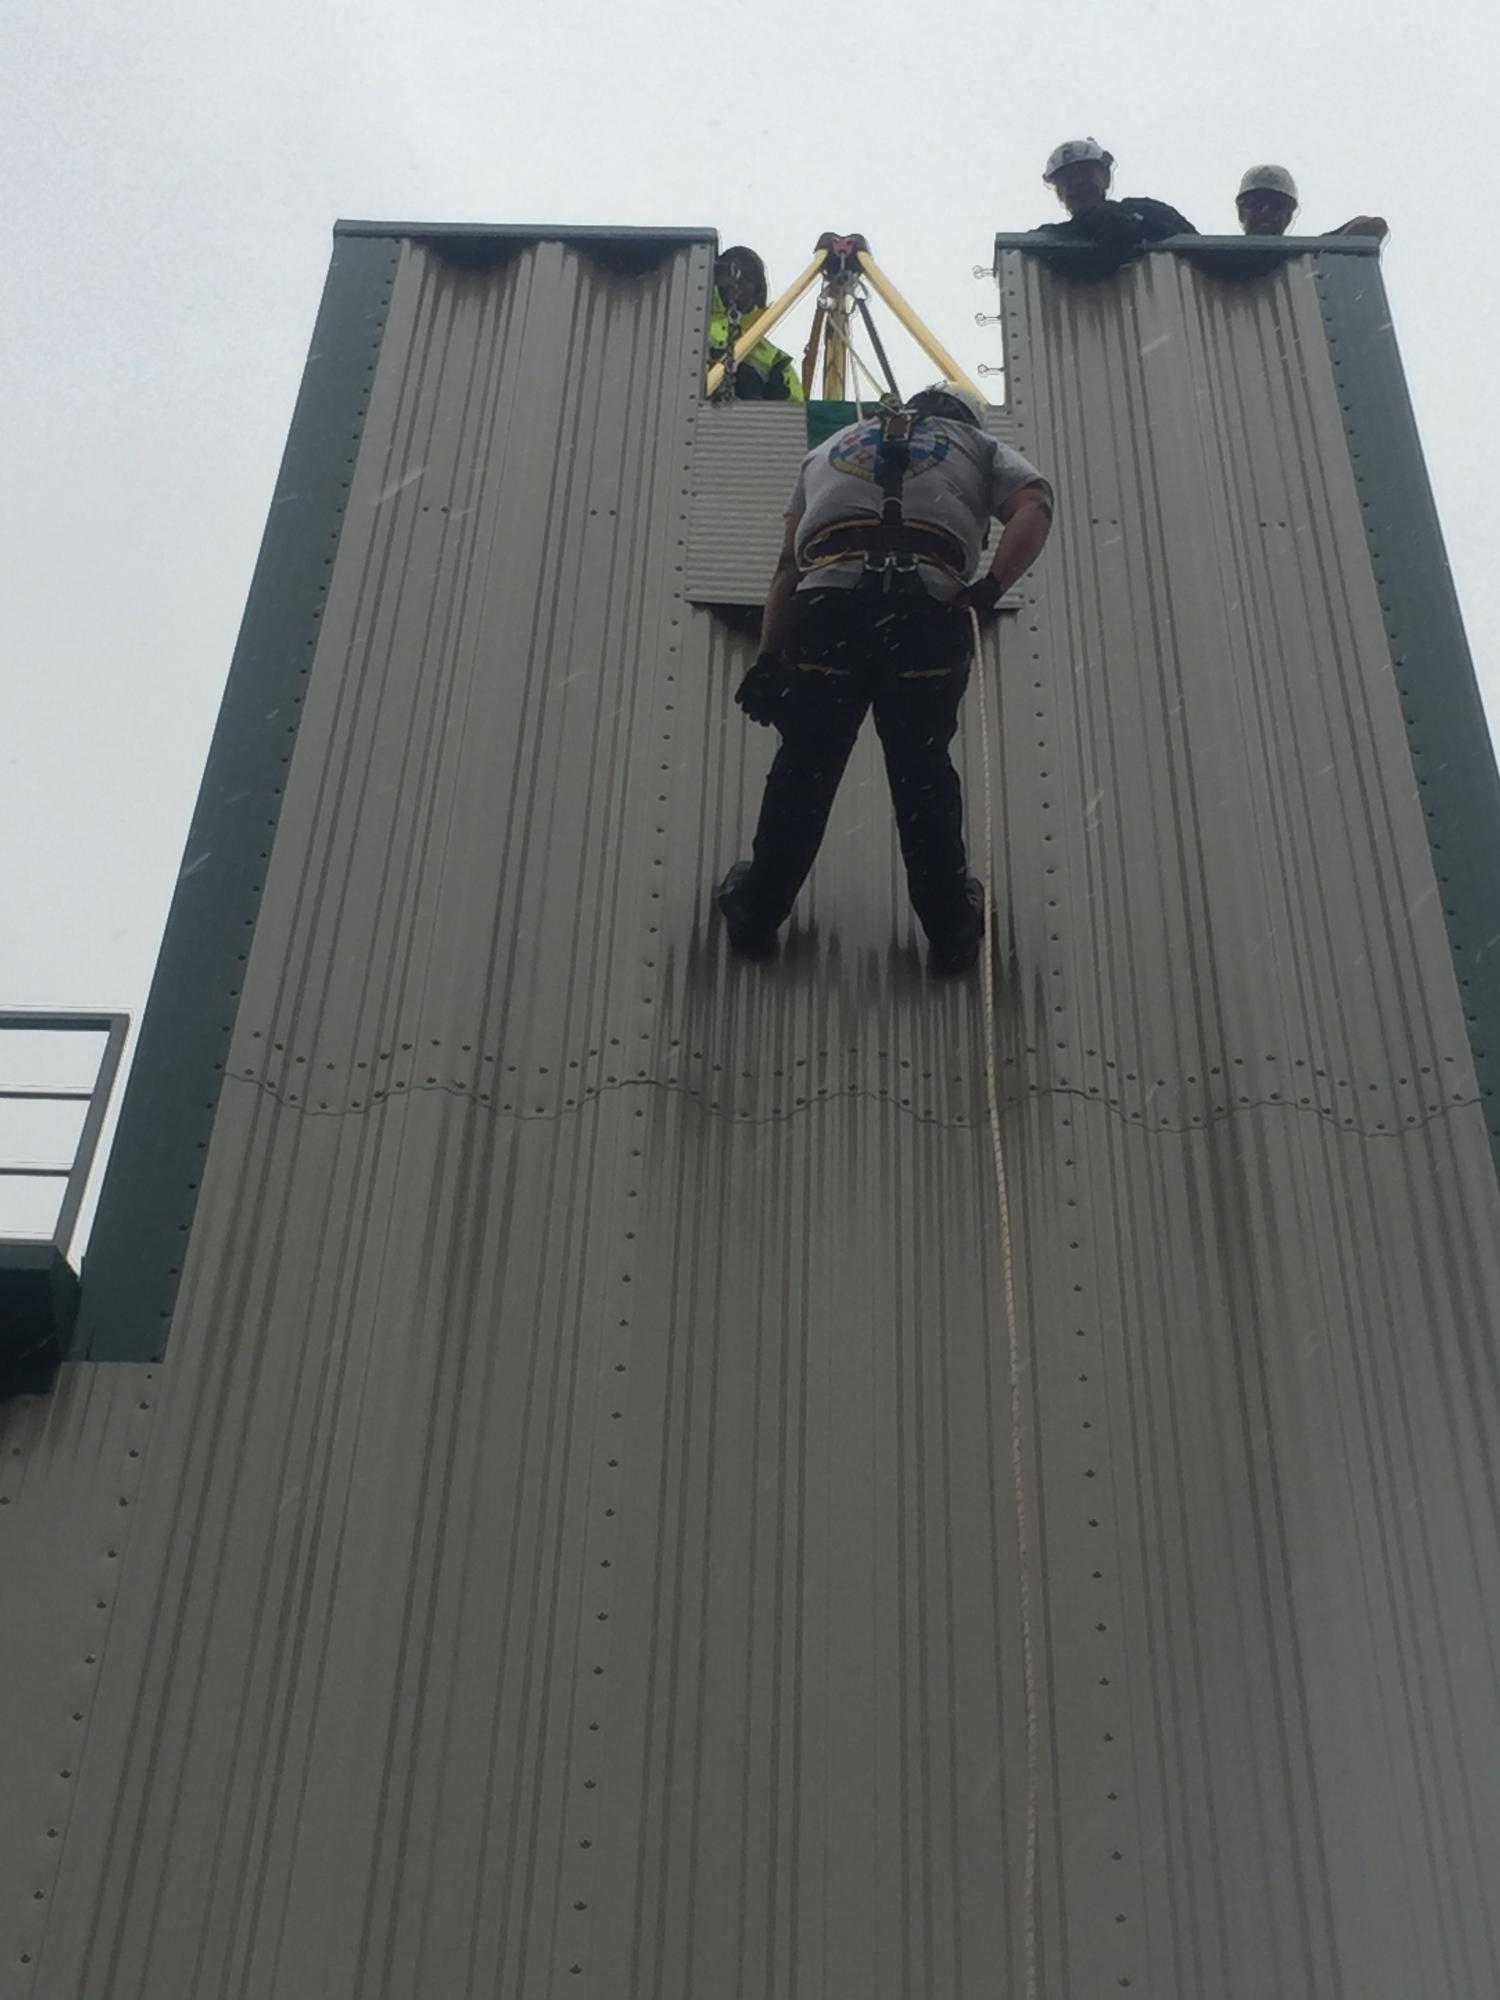 Repelling from the side of the building.